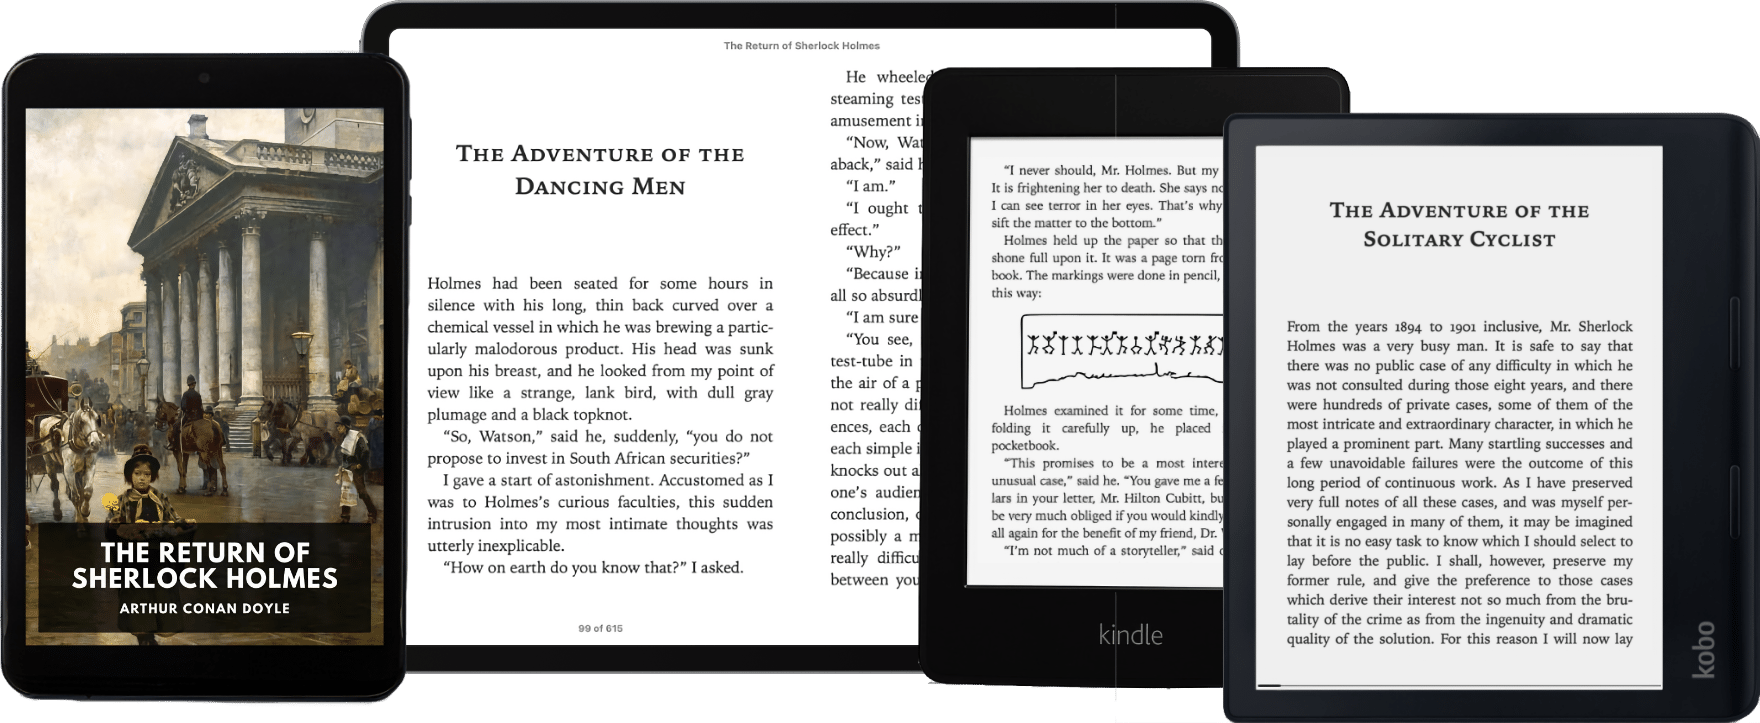 Standard Ebooks: Free and liberated ebooks, carefully produced for the true book lover.